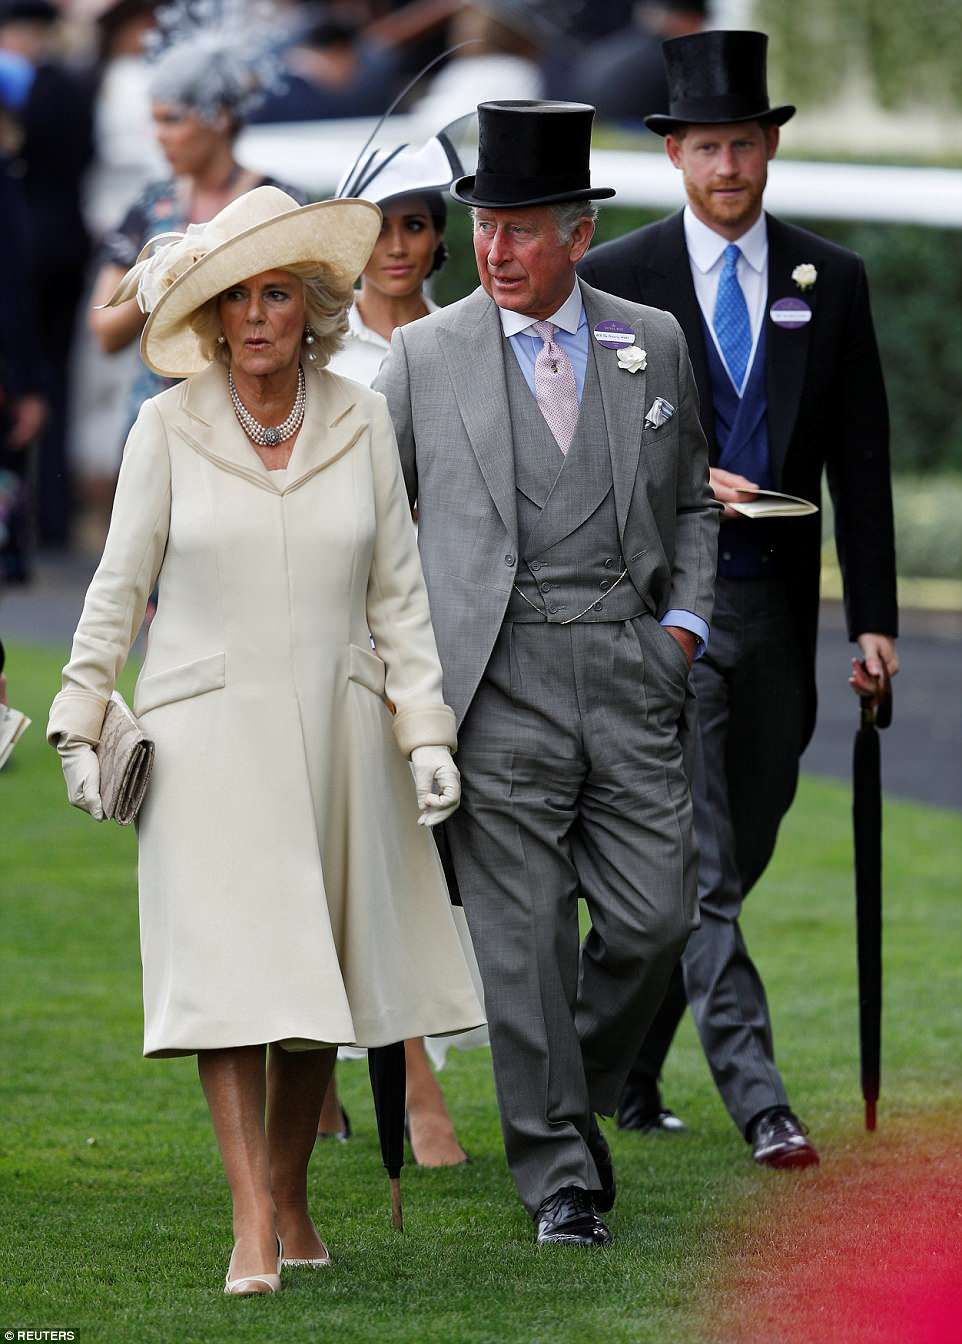 The Duchess of Cornwall opted for an elegant cream ensemble as she arrived with Prince Charles at the Berkshire racecourse